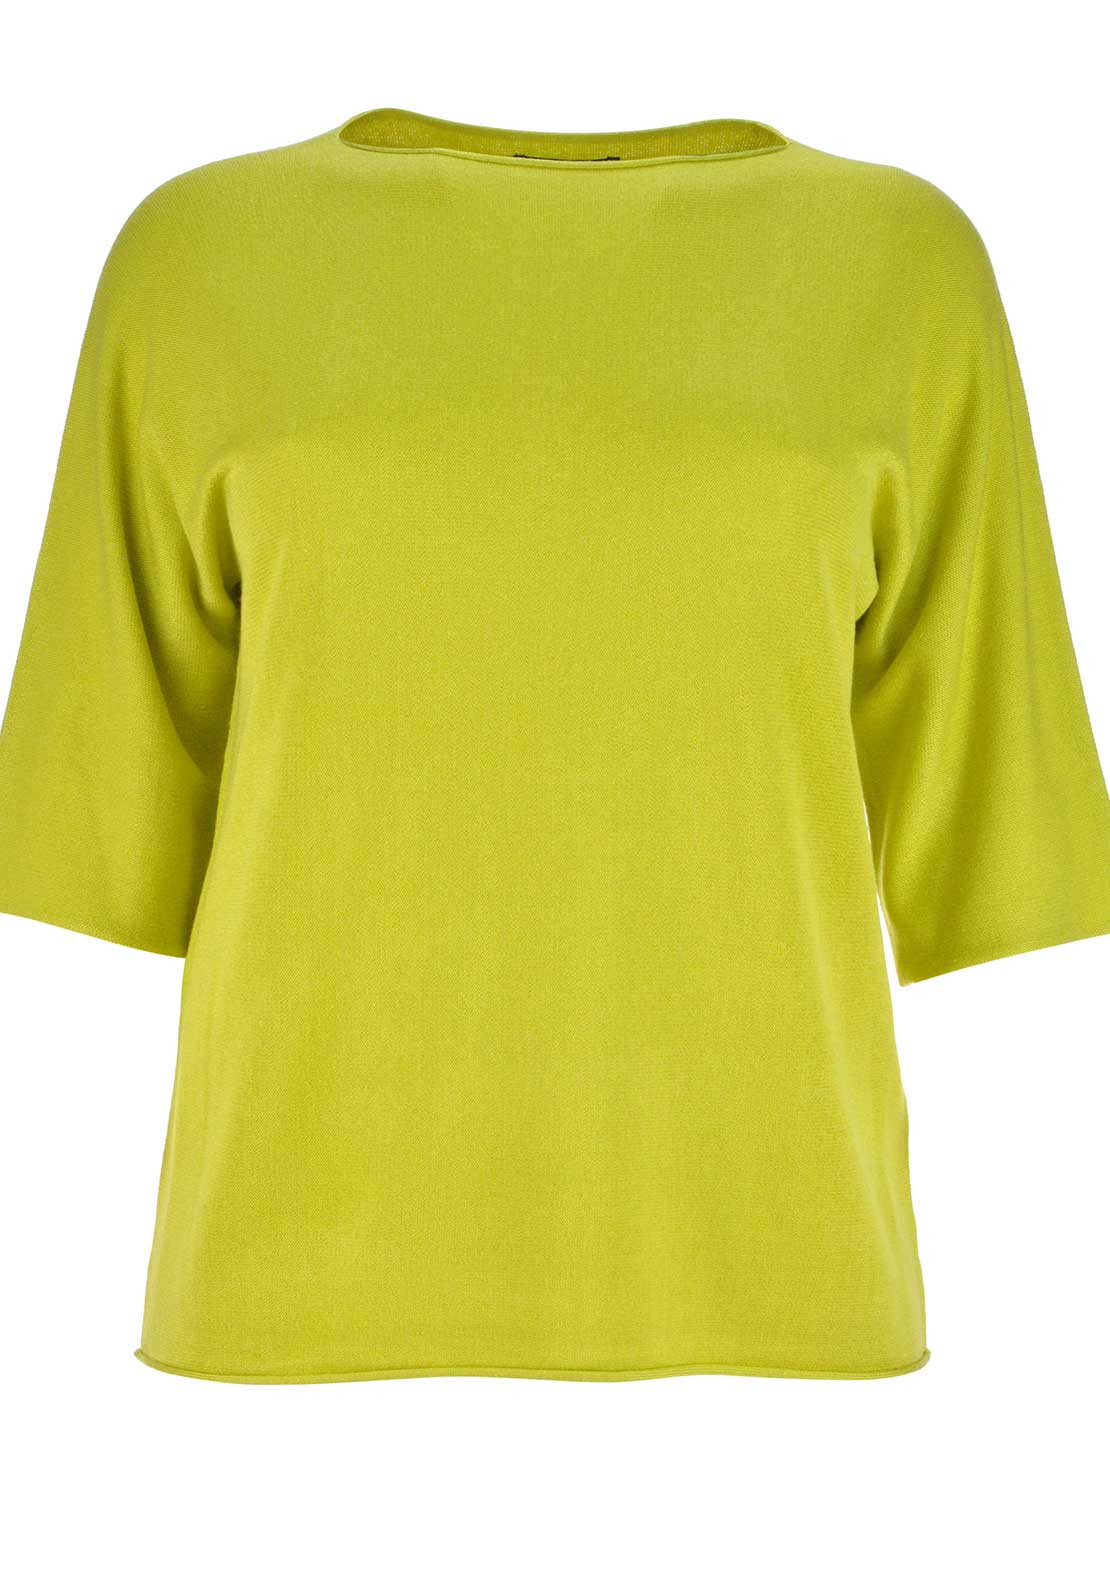 Doris Streich Cropped Sleeve Fine Knit Sweater Jumper, Lime Green